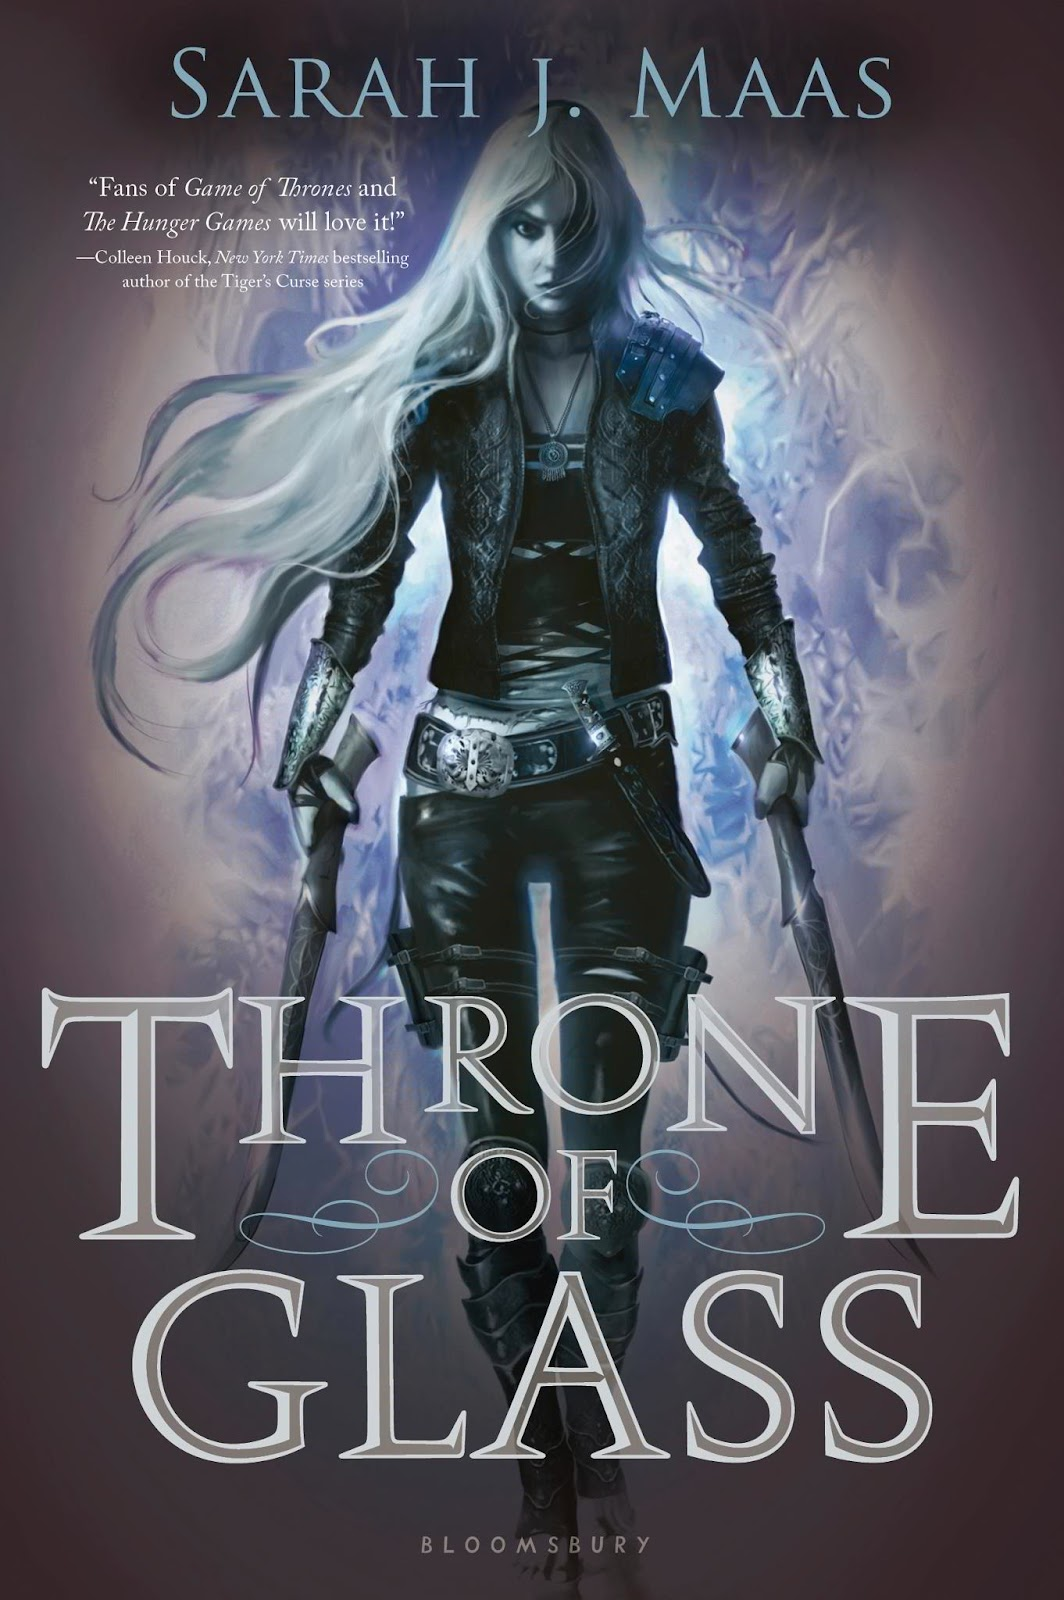 throne-of-glass-cover.jpg